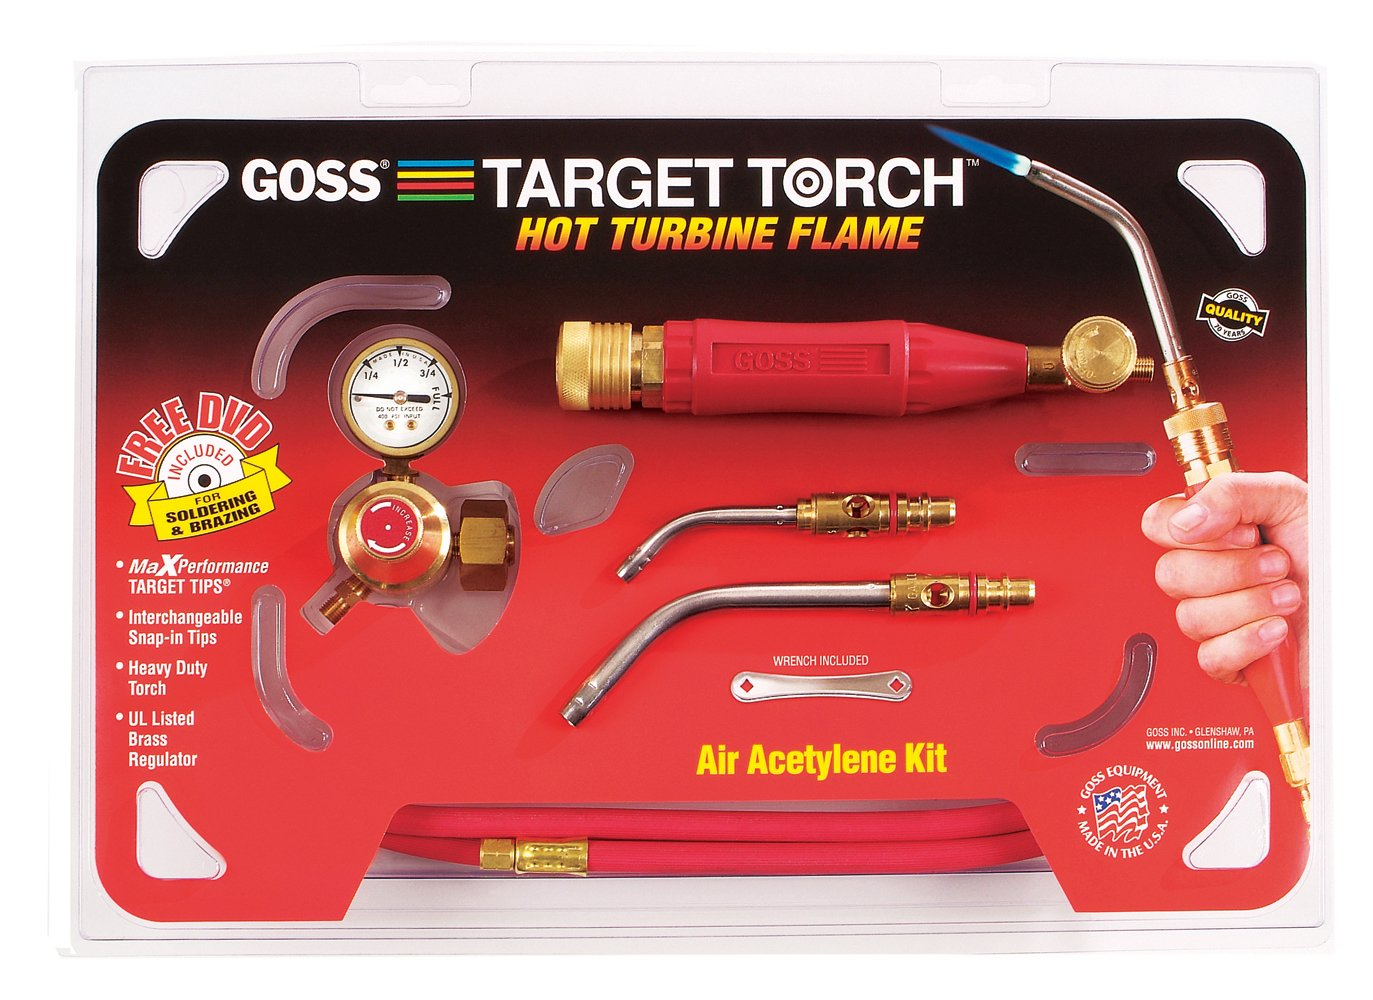 Goss KX-4B Soldering Brazing Torch Kit for B Acetylene Tanks with GA-5 and GA-14 Target Tips and Hot Turbine Flame by Goss B002E8A5A6